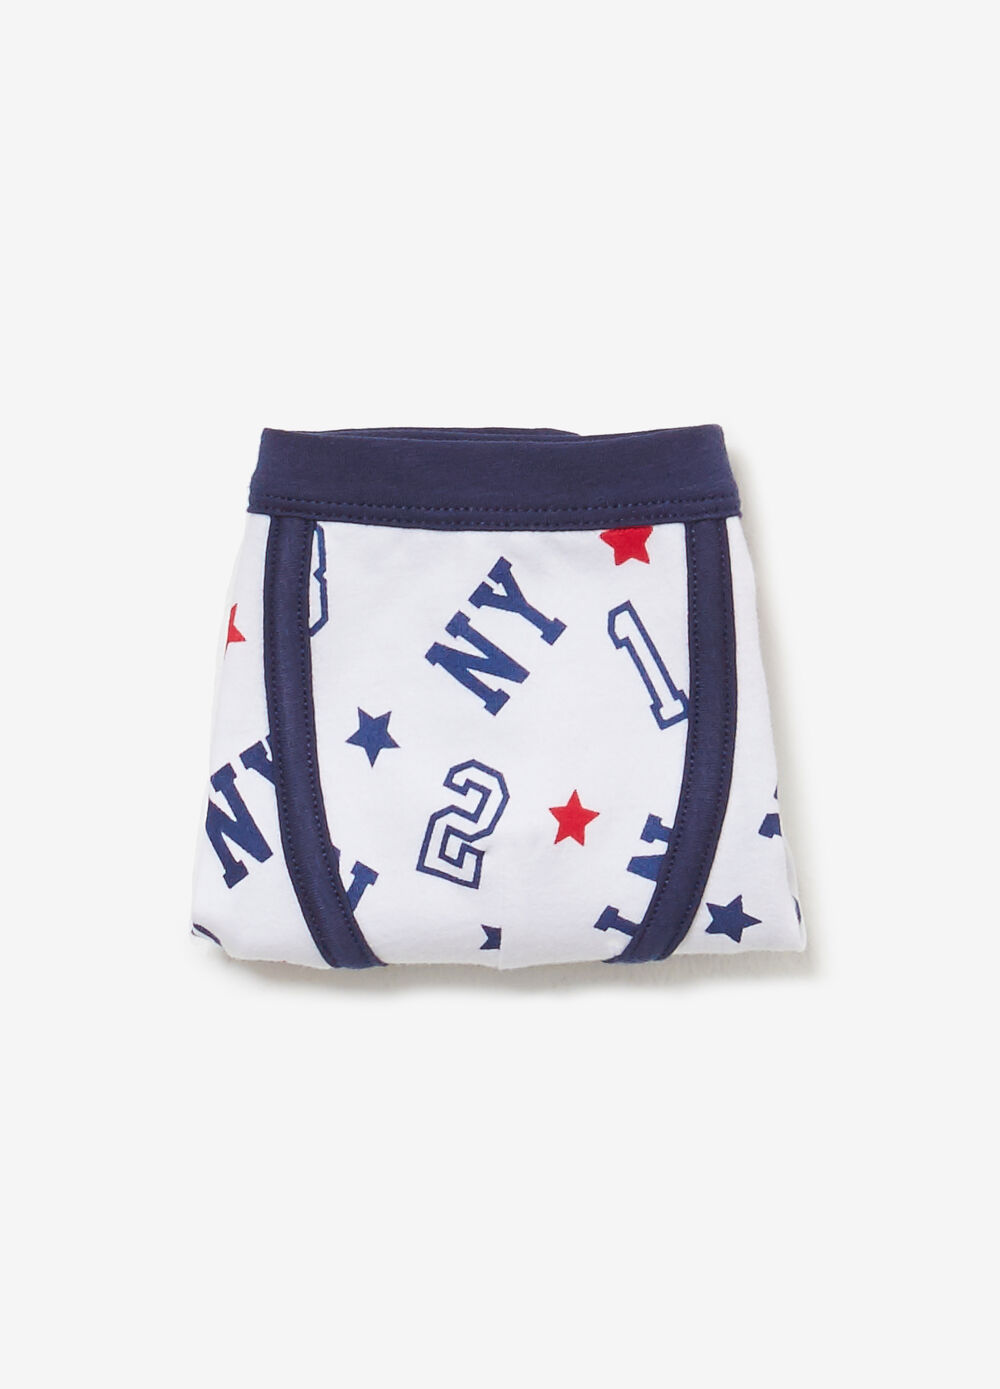 Boxer shorts in cotton with lettering pattern